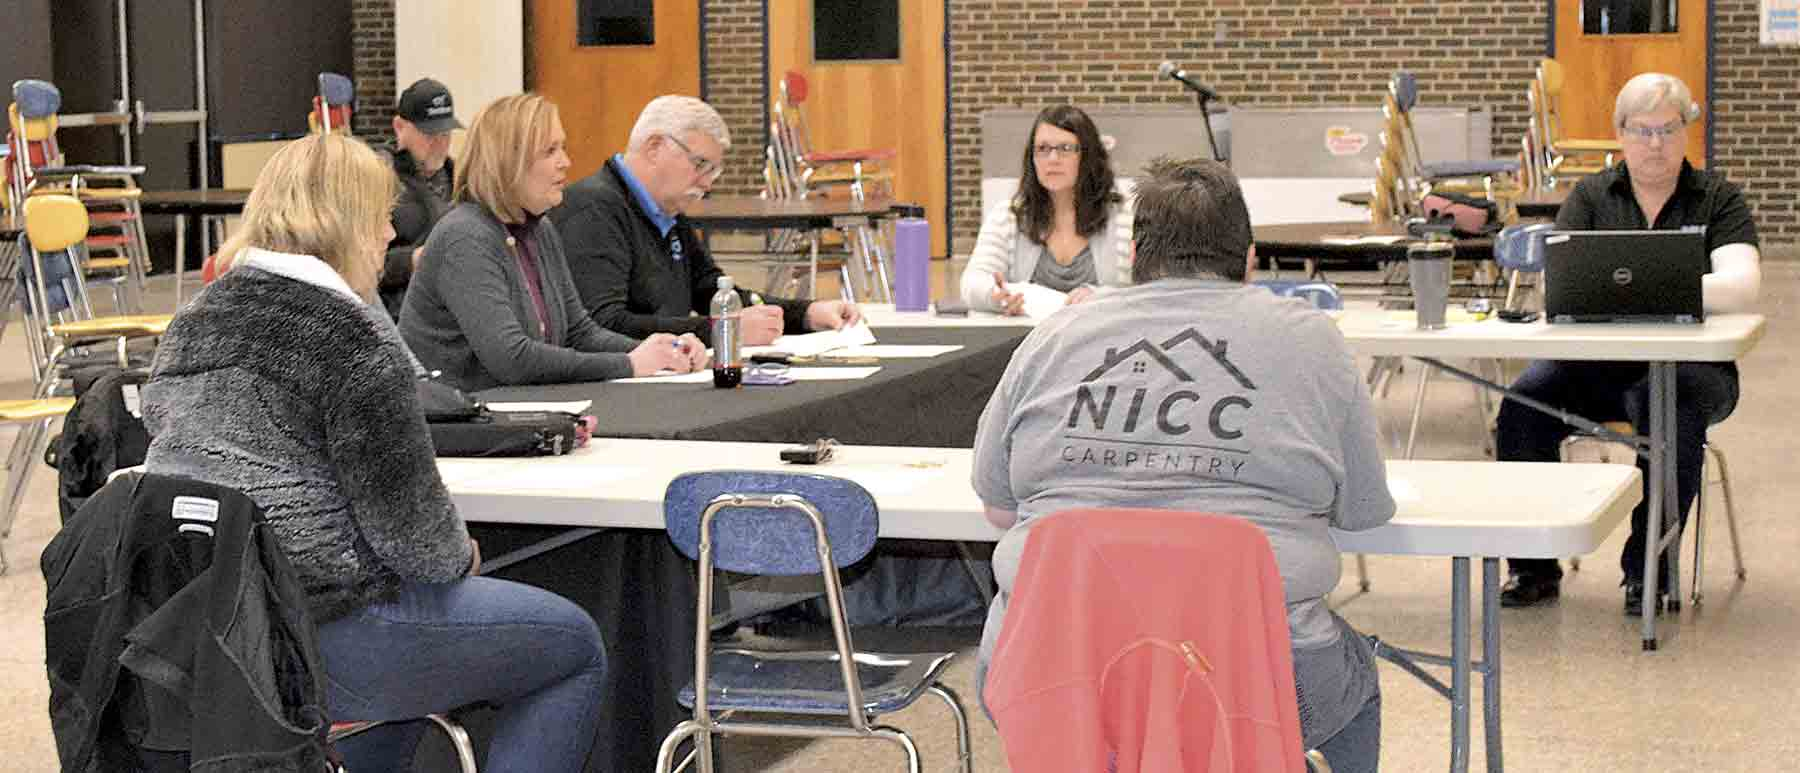 The North Fayette Valley school board met for a special meeting on Wednesday, March 18 at the North Fayette Valley high school.  Just three days into the statewide school shut down, the members voted to continue paying hourly employees during the unprecedented COVID-19 outbreak....